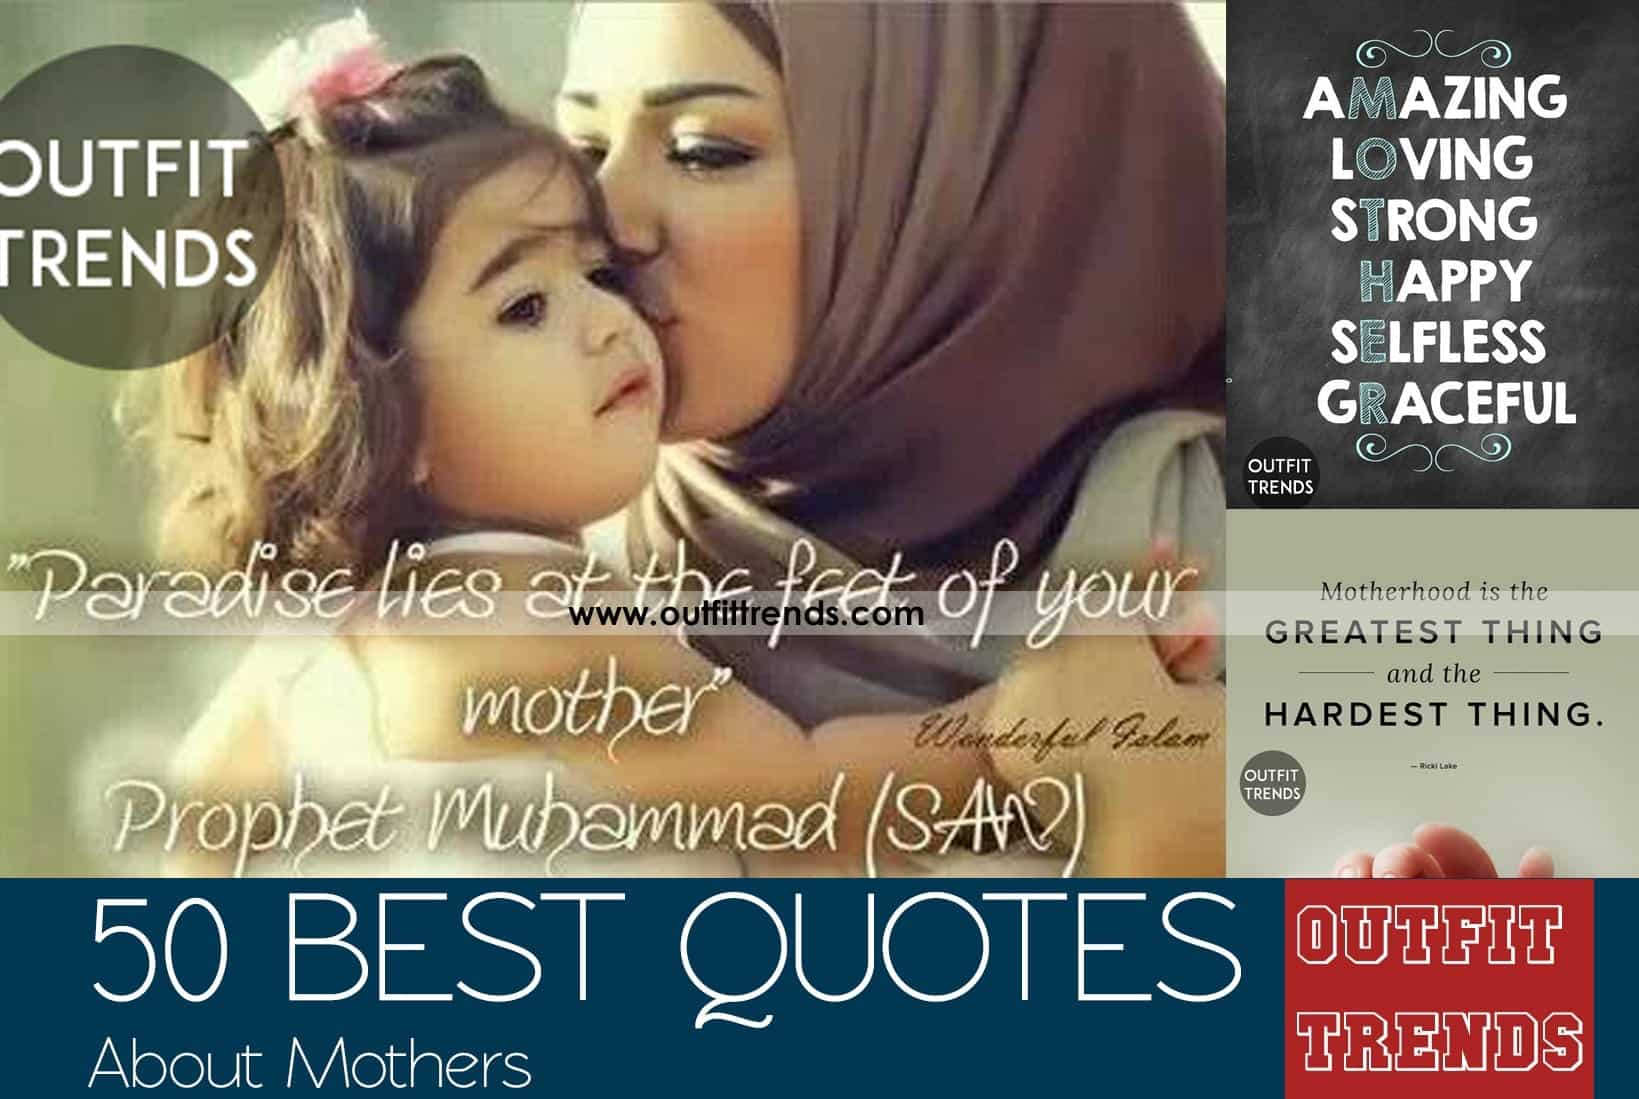 These 50 islamic quotes on mother shows status of women in islam